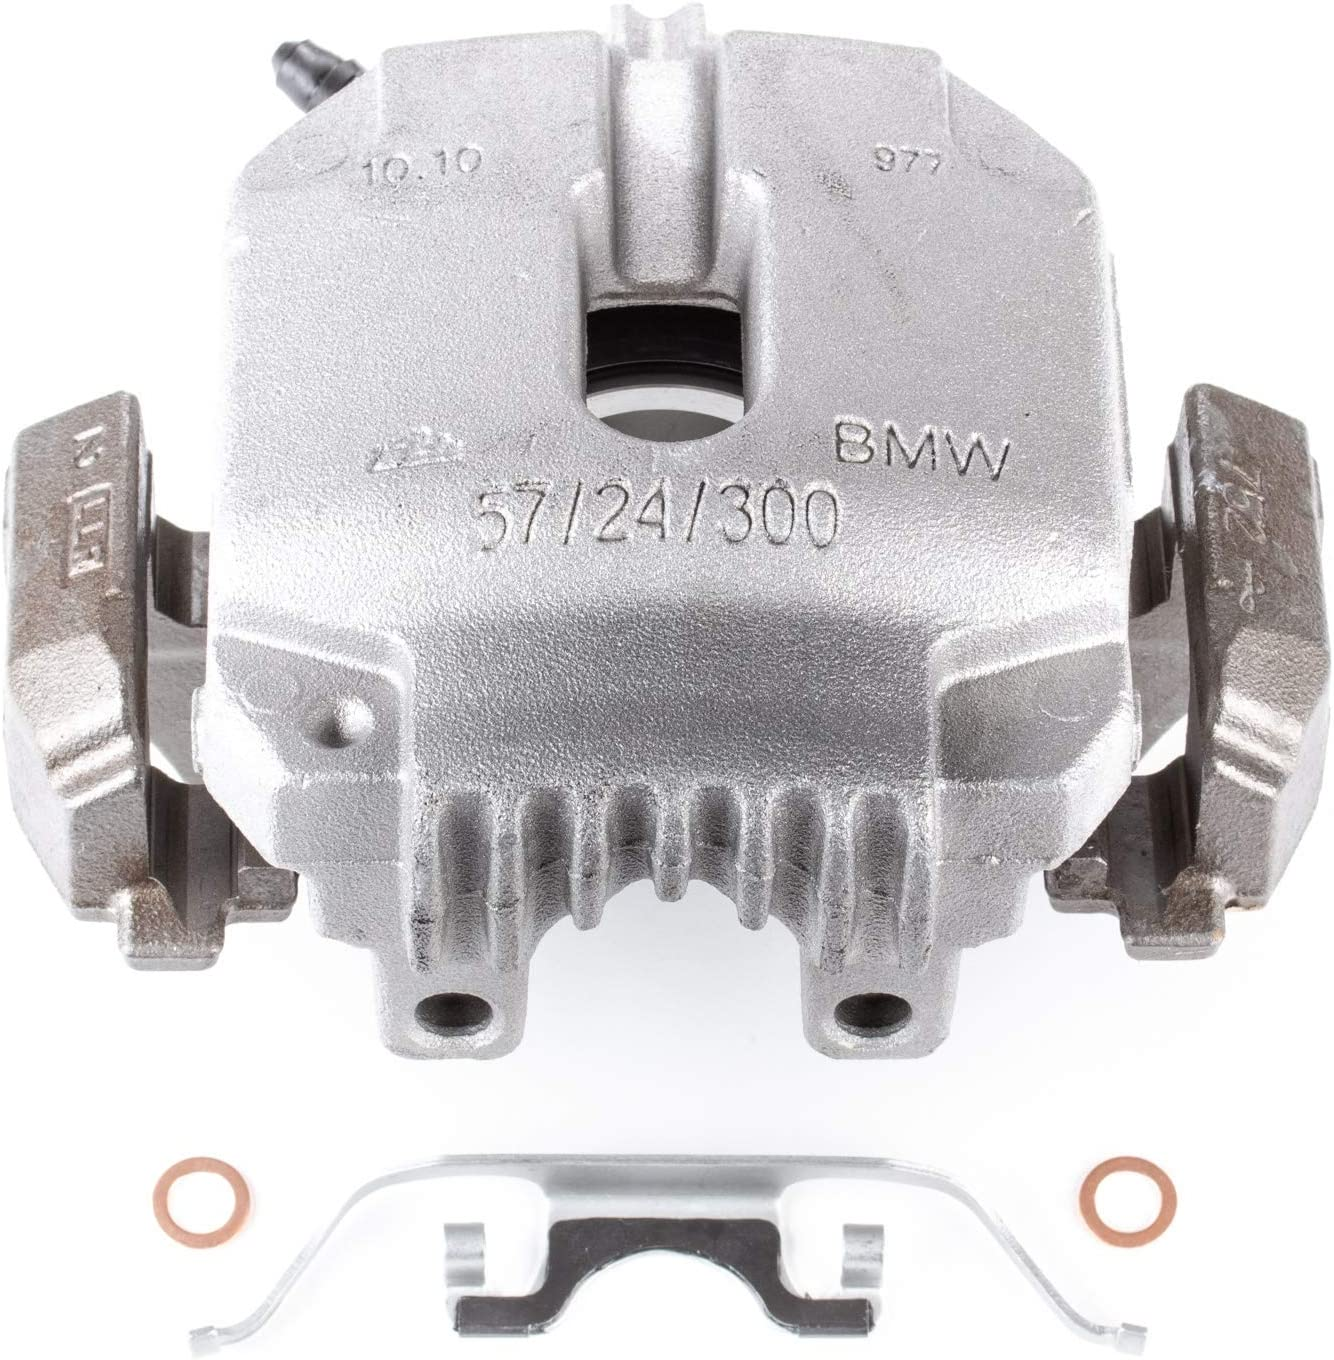 Power Stop L3243 Autospecailty OE Stock Replacement Front Left Brake Caliper